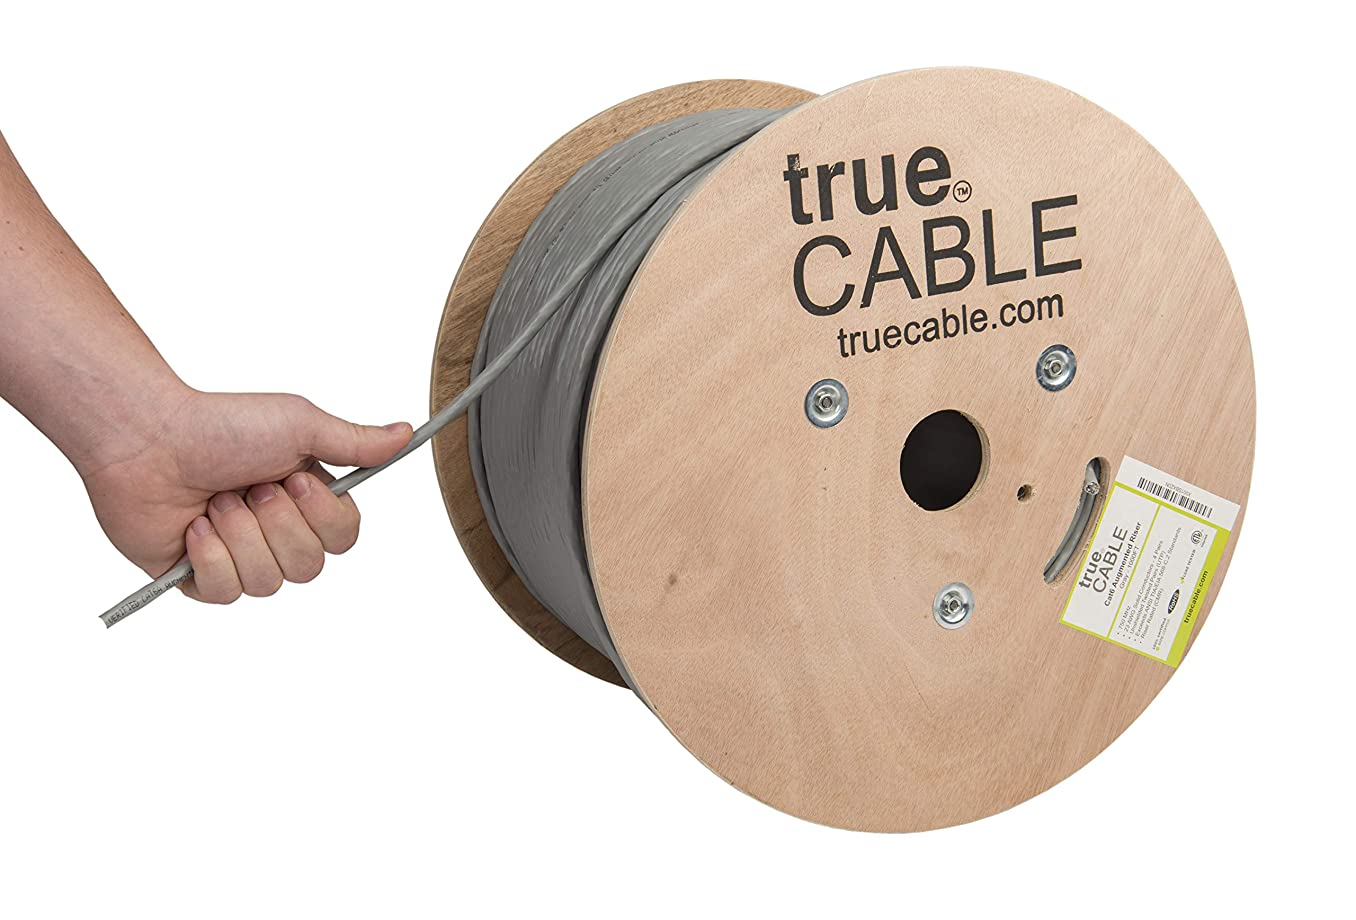 Cat6A Riser (CMR), 1000ft, Gray, 23AWG 4 Pair Solid Bare Copper, 750MHz, ETL Listed, Unshielded Twisted Pair (UTP), Bulk Ethernet Cable, trueCABLE